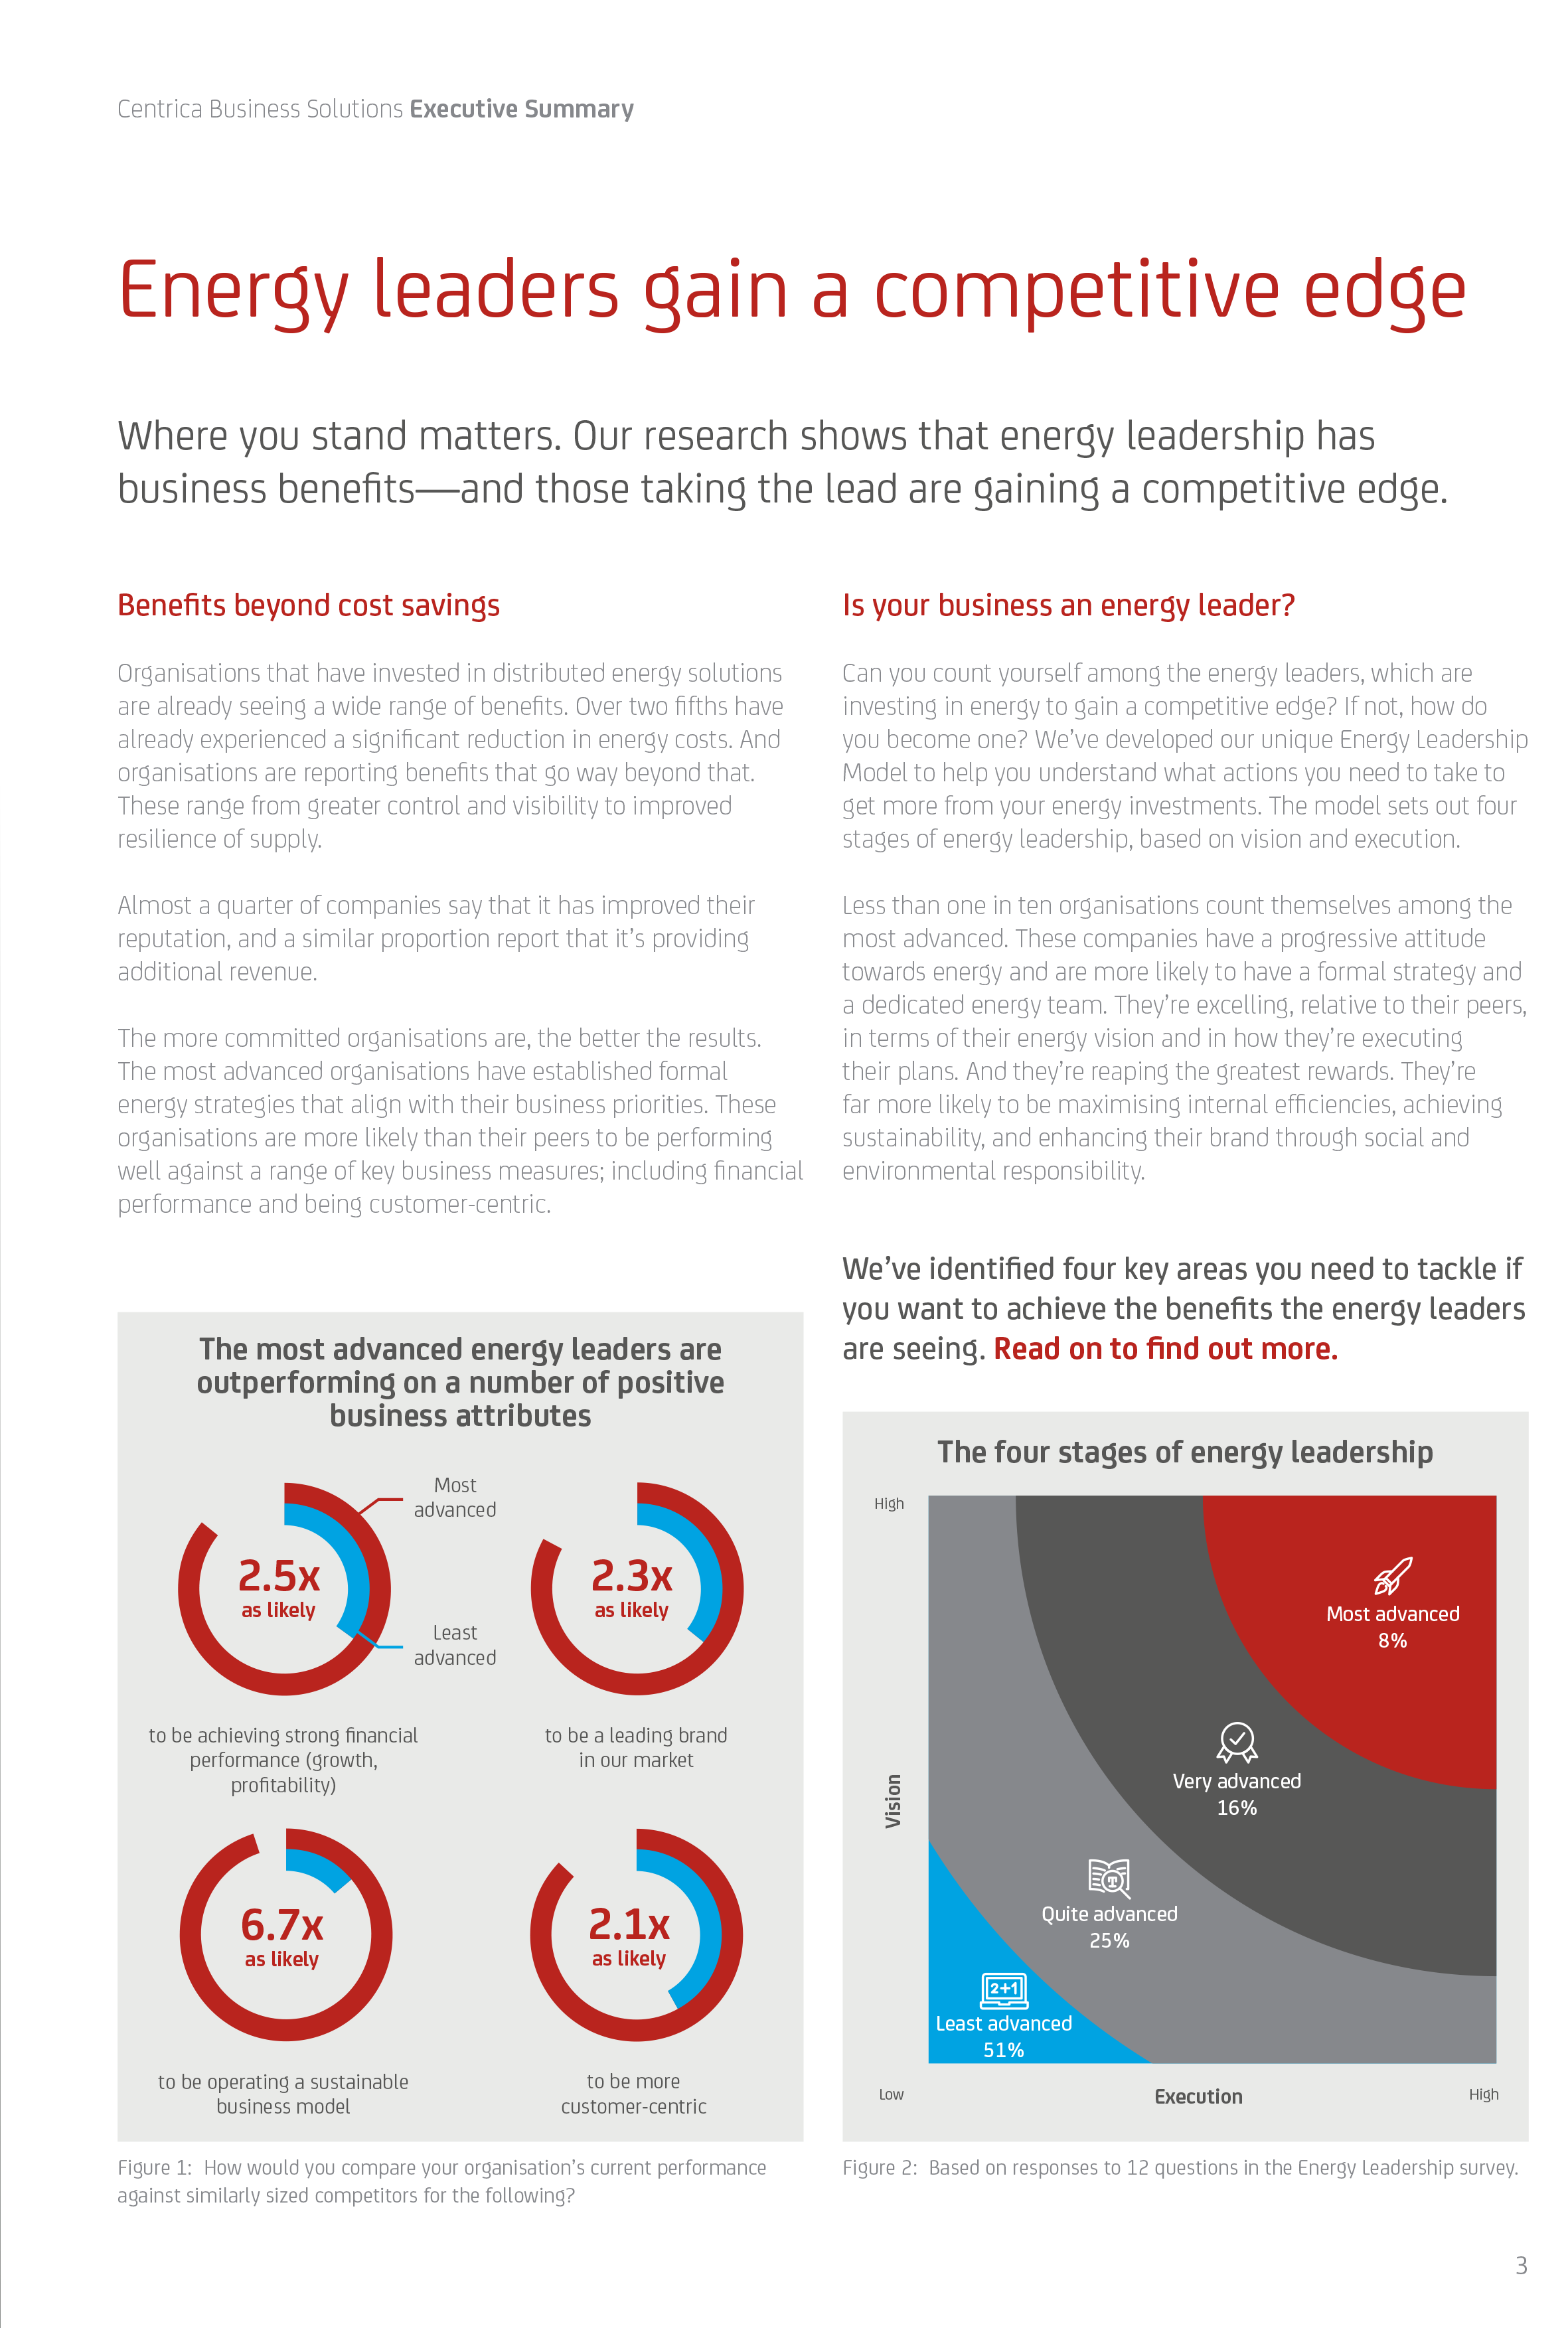 Excerpt from the Energy Advantage Report 2018 executive summary